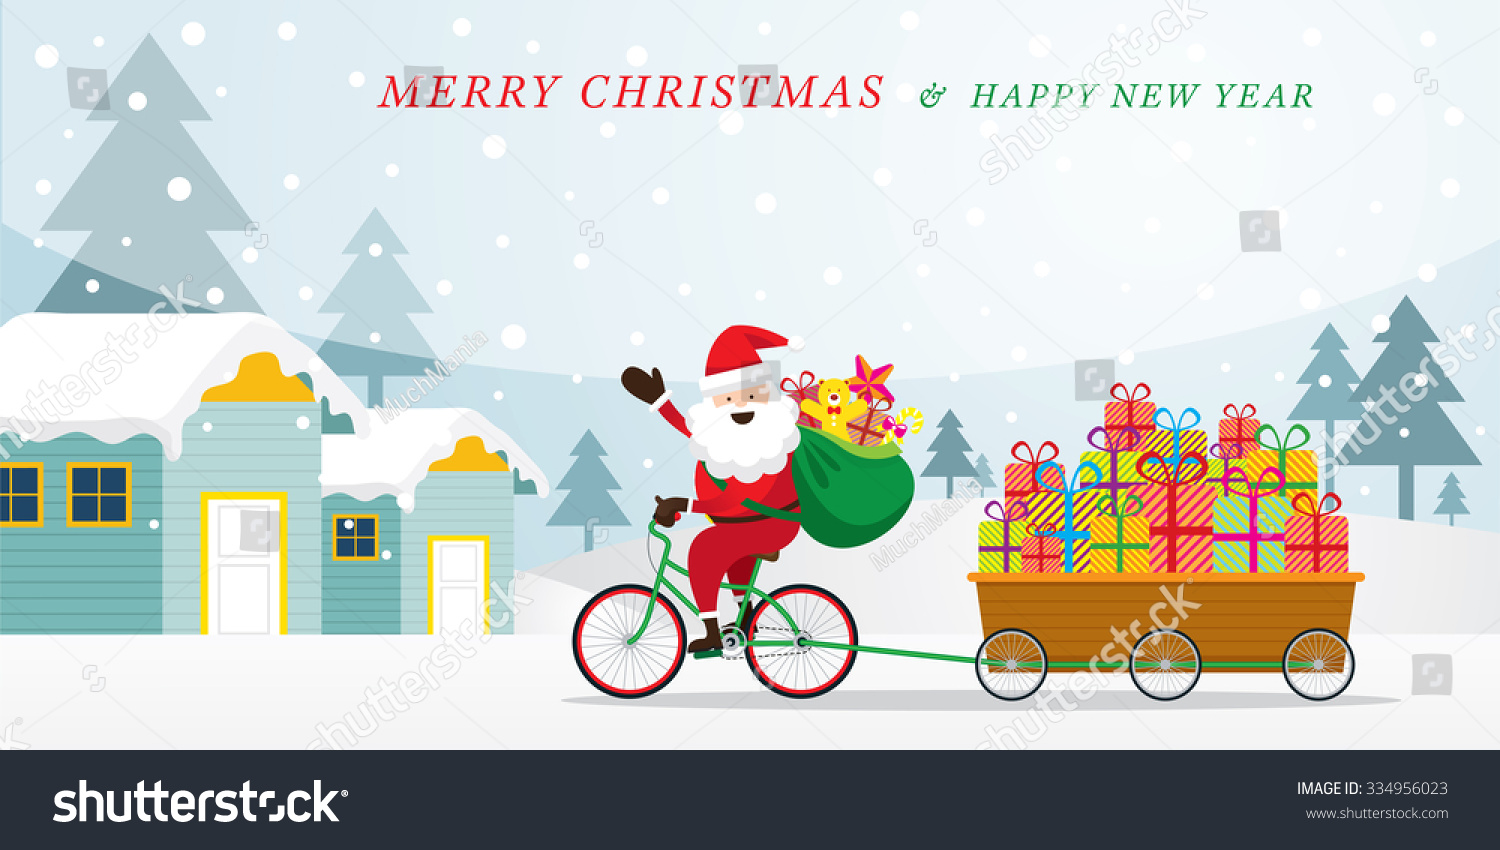 Santa Claus Cycling Bicycles with Gift Boxes in Cart Houses and Snowfall Background Merry Christmas and Happy New year